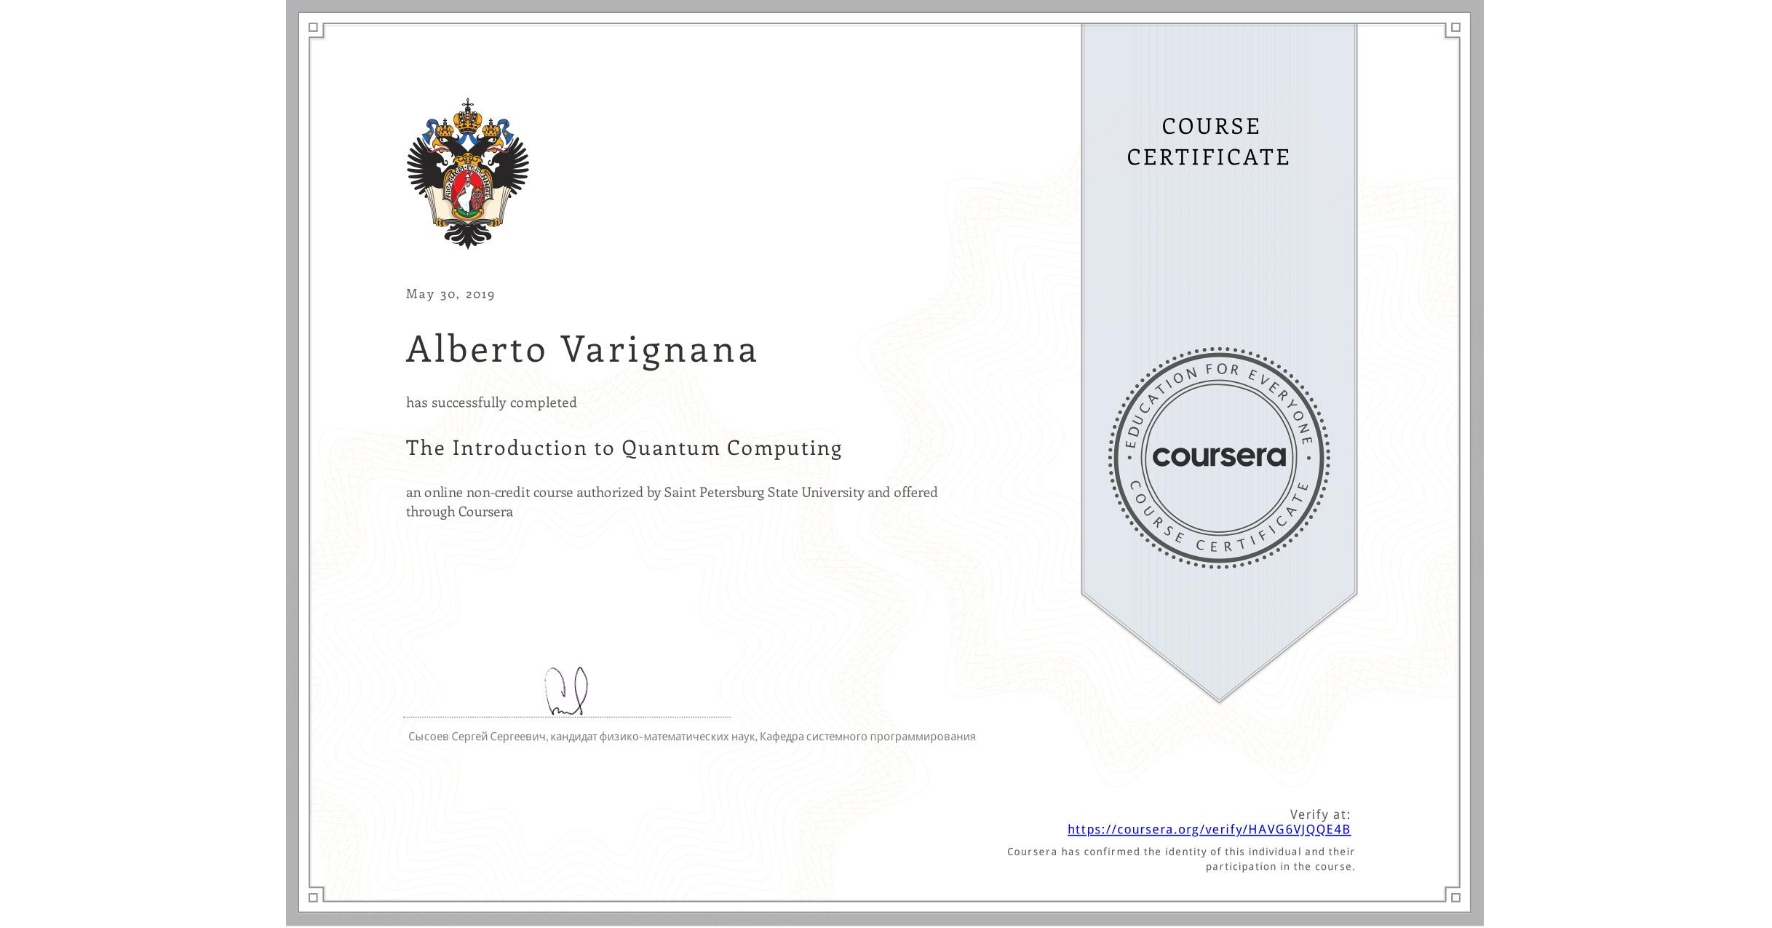 View certificate for Alberto Varignana, The Introduction to Quantum Computing, an online non-credit course authorized by Saint Petersburg State University and offered through Coursera